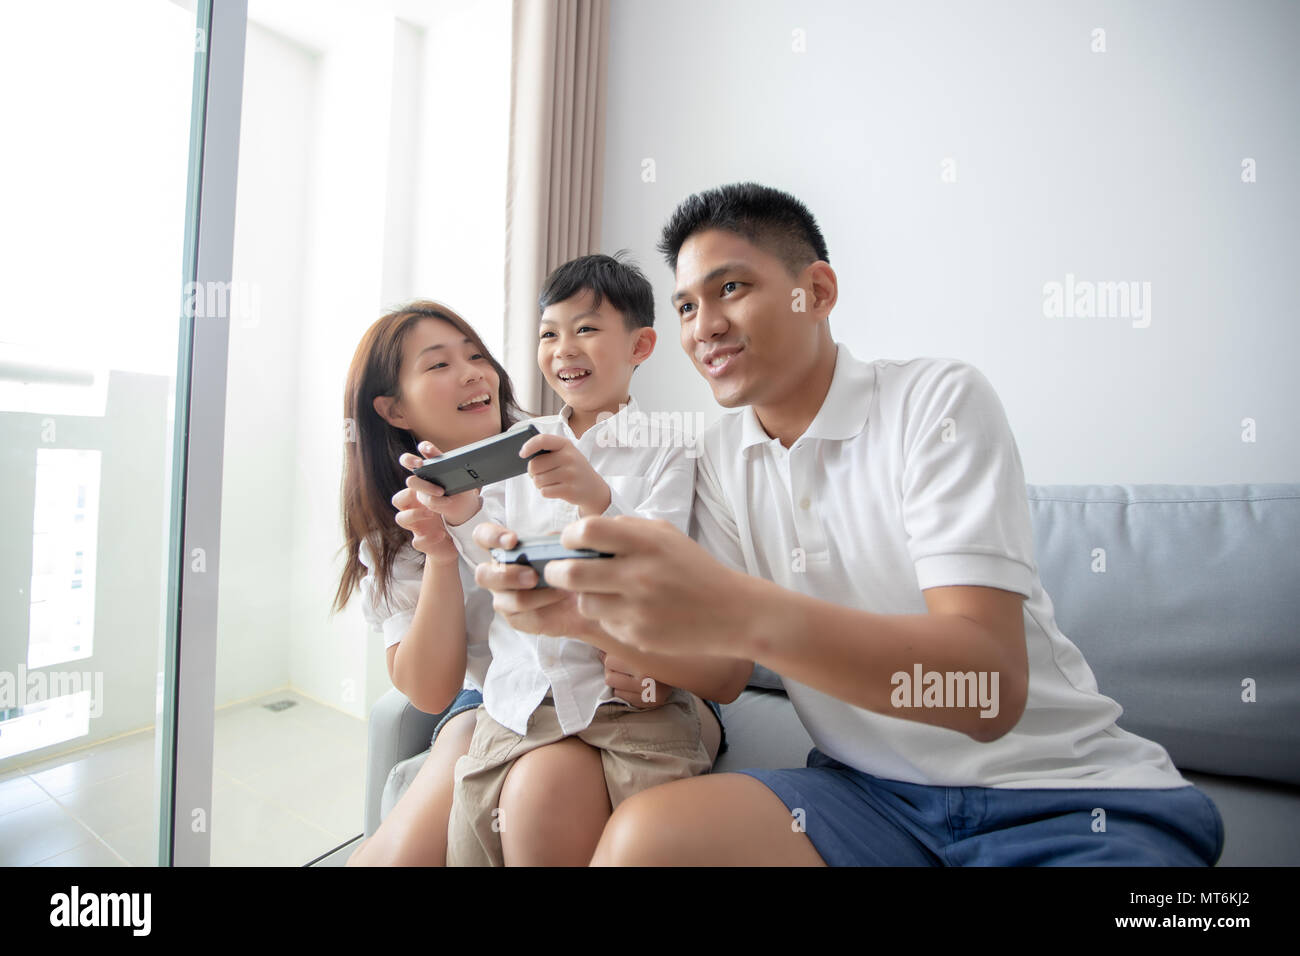 Asian family having fun playing computer console games together, Father and son have the handset controllers and the mother is cheering the players. - Stock Image